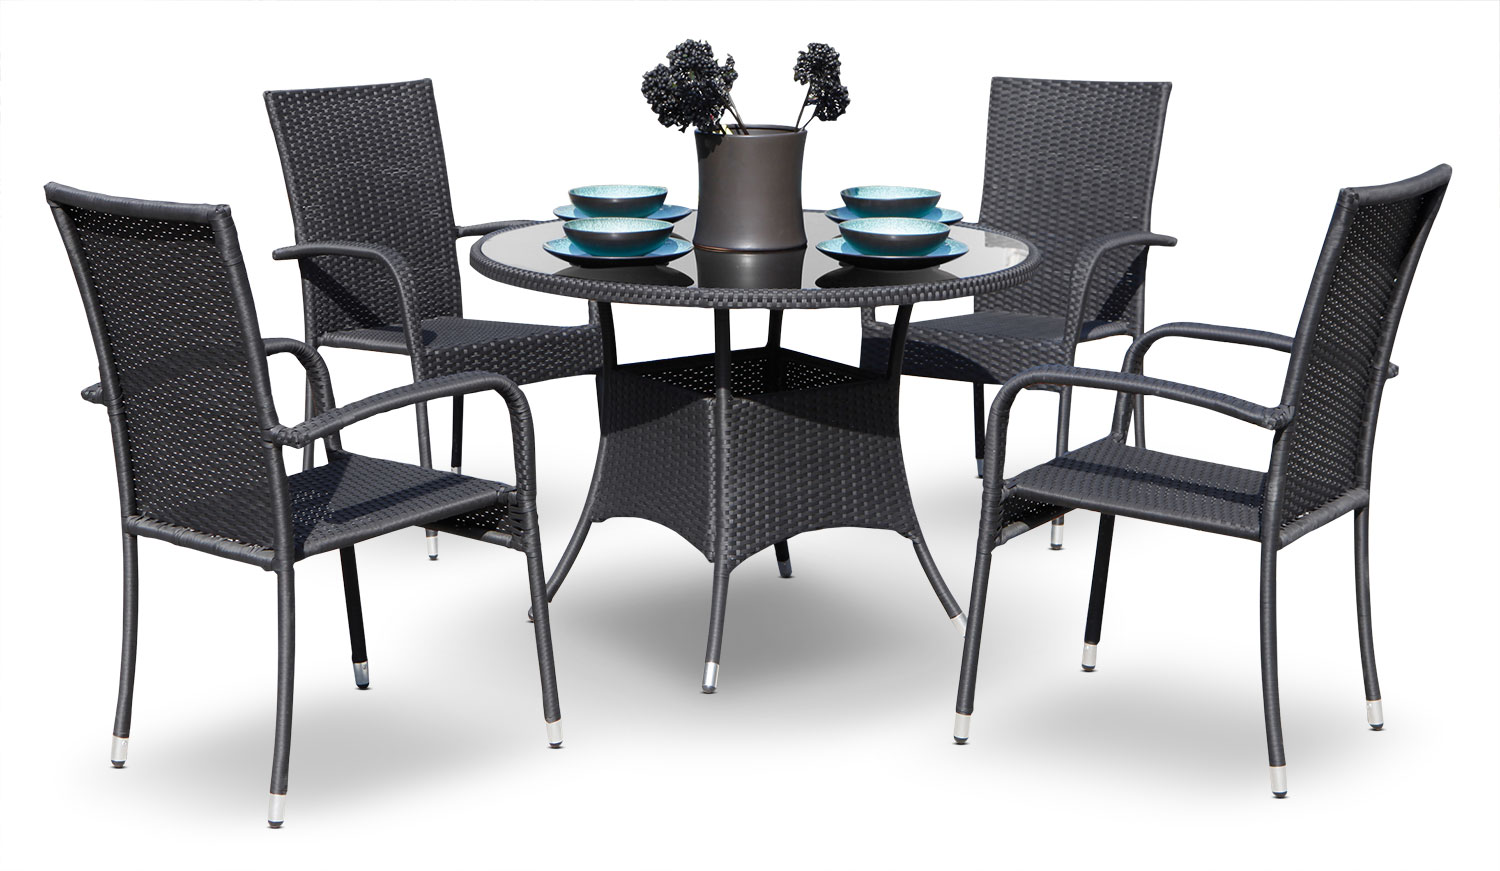 Outdoor Furniture - Haiti 5-Piece Patio Set